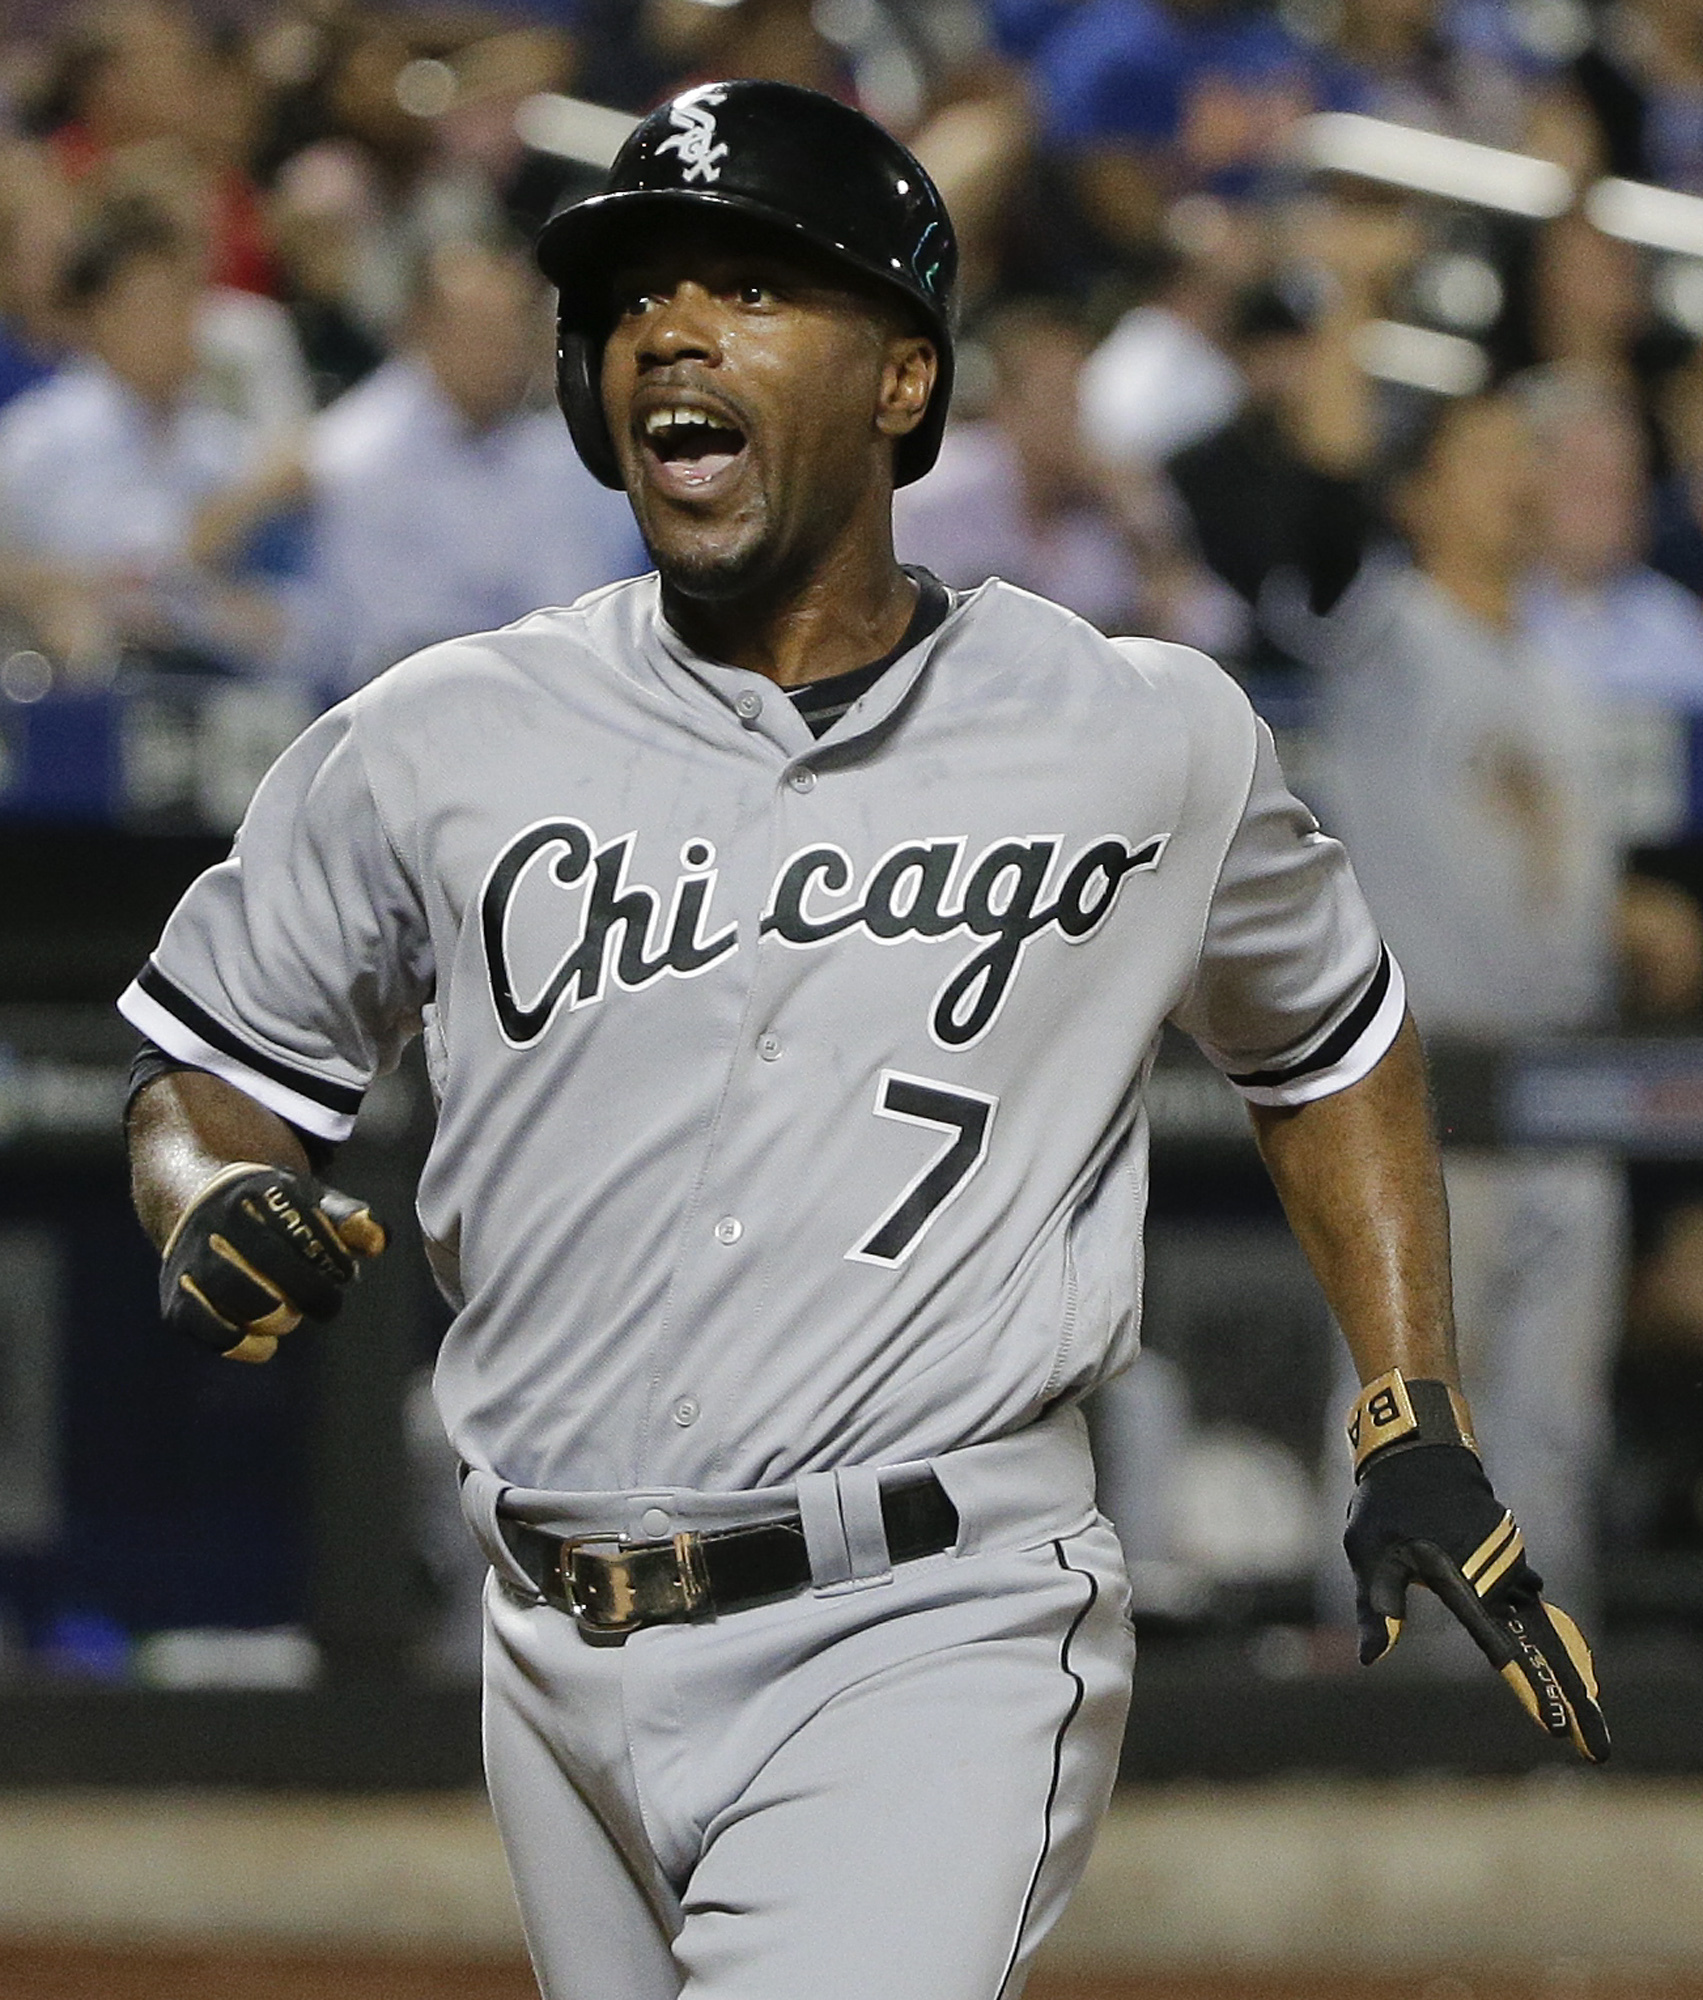 Chicago White Sox's Jimmy Rollins (7) reacts after scoring against the New York Mets on a base hit by Brett Lawrie during the eighth inning of a baseball game, Tuesday, May 31, 2016, in New York. The White Sox won 6-4.(AP Photo/Julie Jacobson)